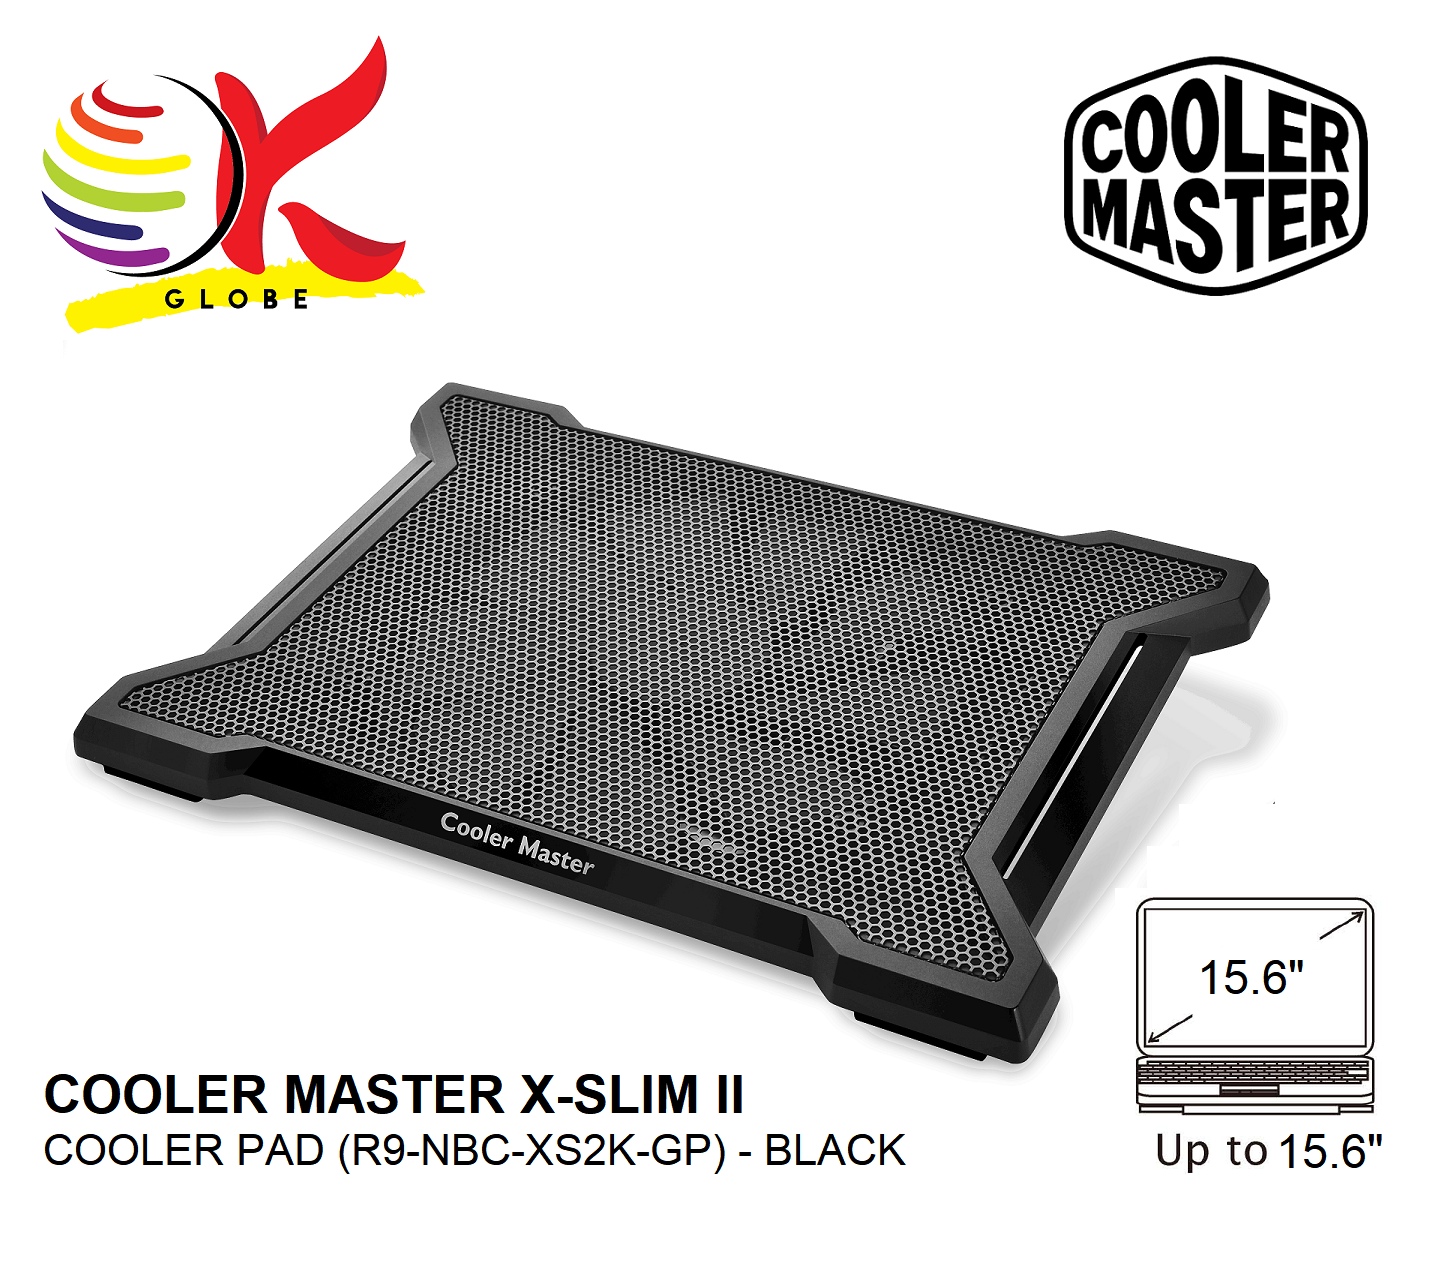 COOLER MASTER NOTEPAL X-SLIM II COOLER PAD WITH 20MM SILENT FANS AND SUPPORT UP TO 15.6  LAPTOP (R9-NBC-XS2K-GP) - BLACK Malaysia